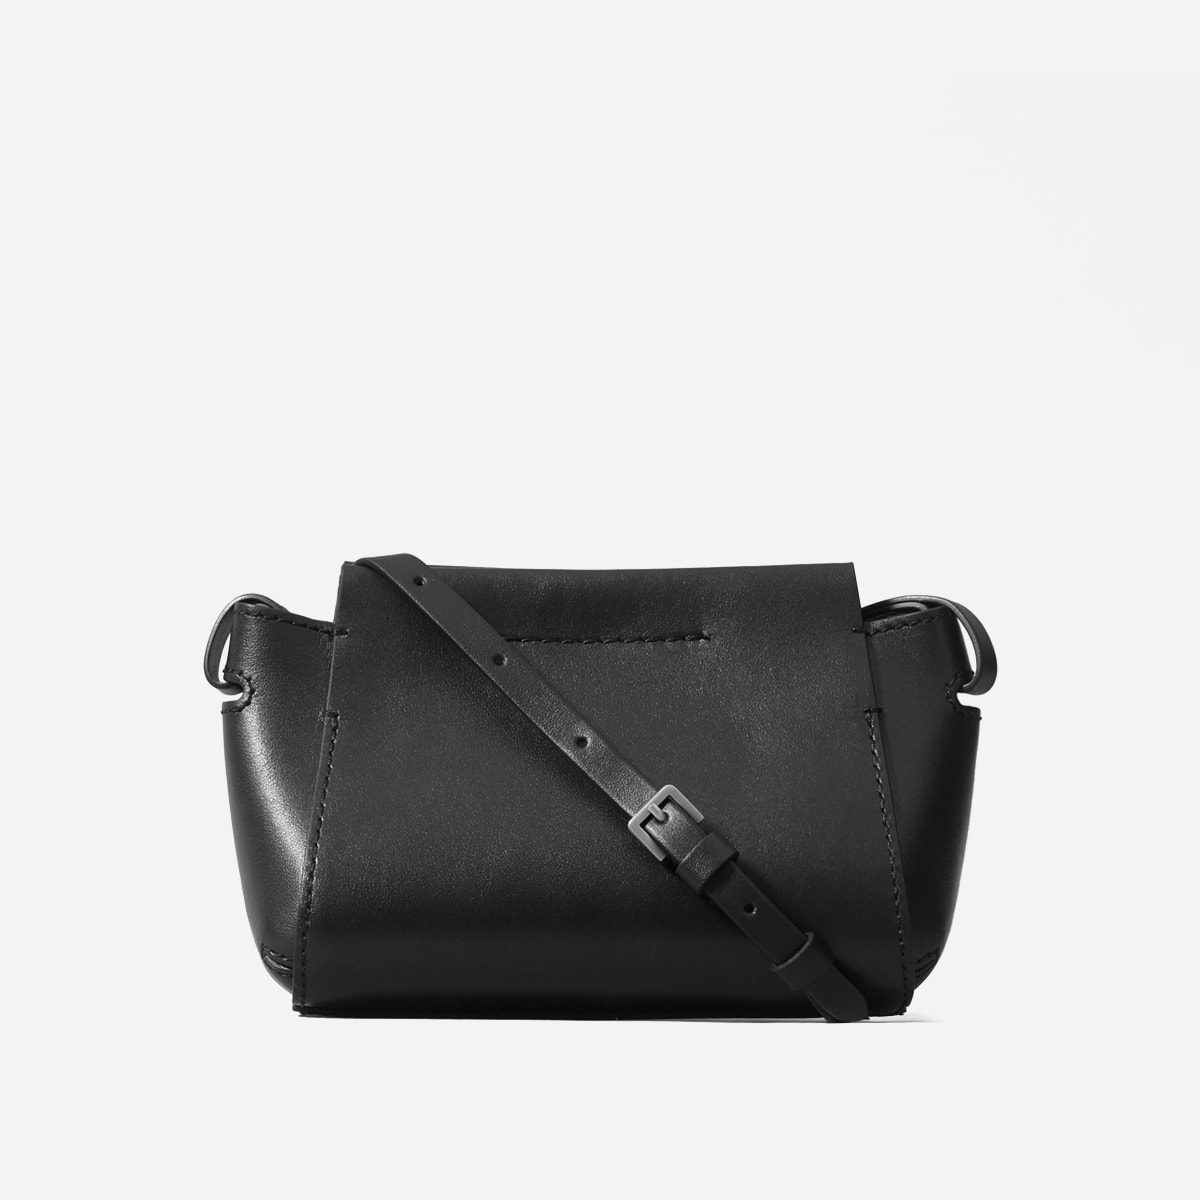 The Micro Form Bag by Everlane